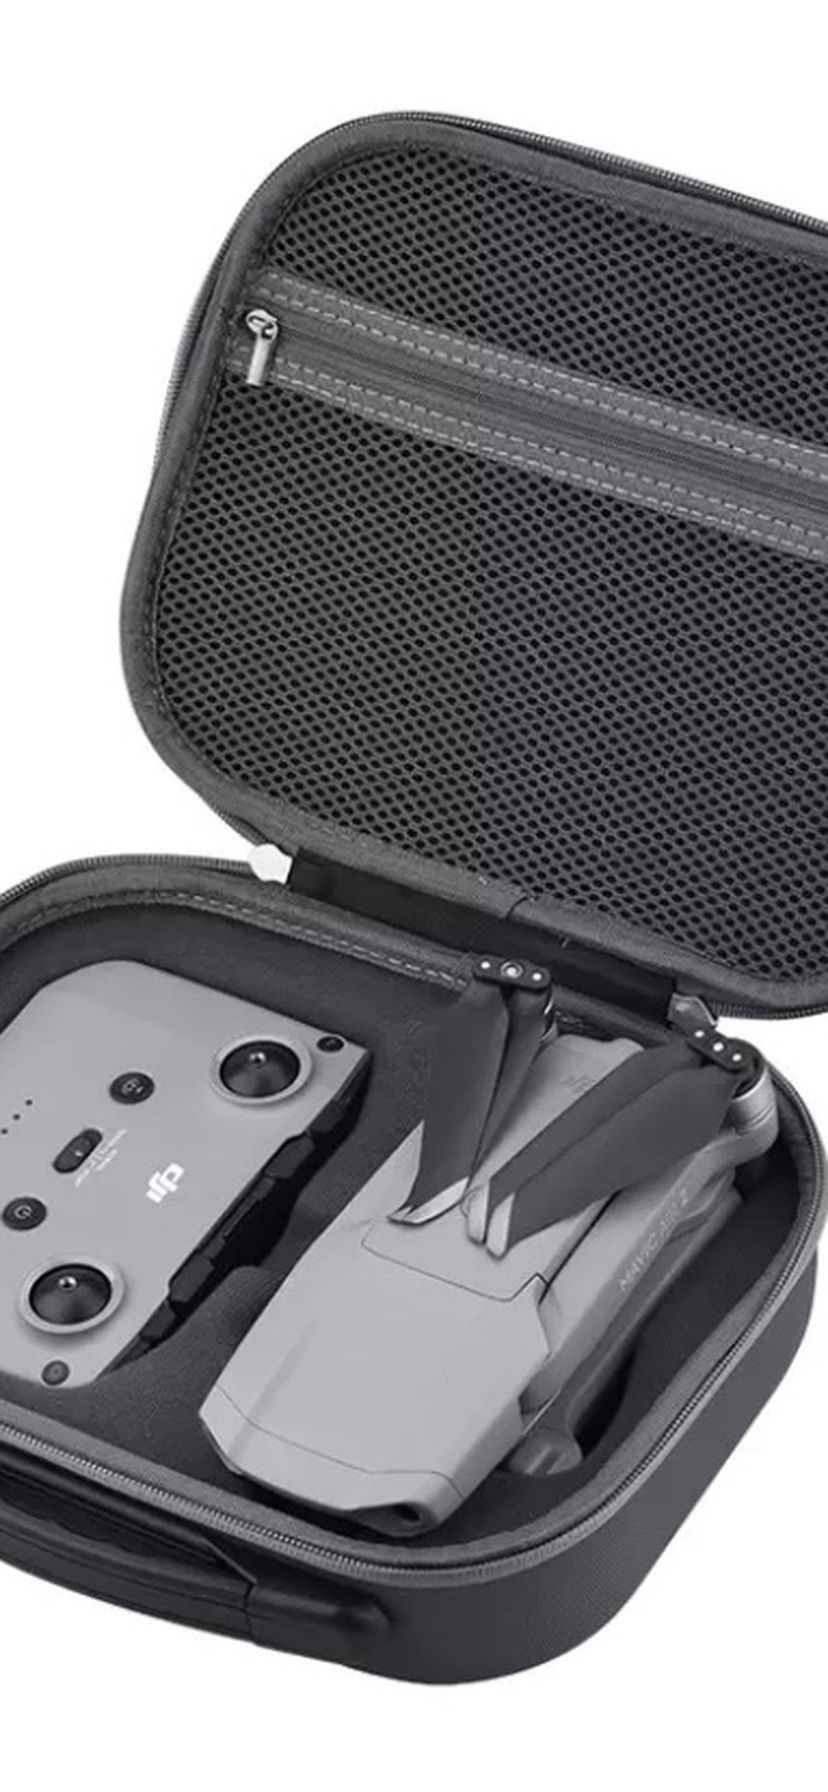 Handbag for DJI Mavic Air 2 Portable Suitcase Drone Remote Control Storage Bag Protective Waterproof Carrying Case Accessorry htt